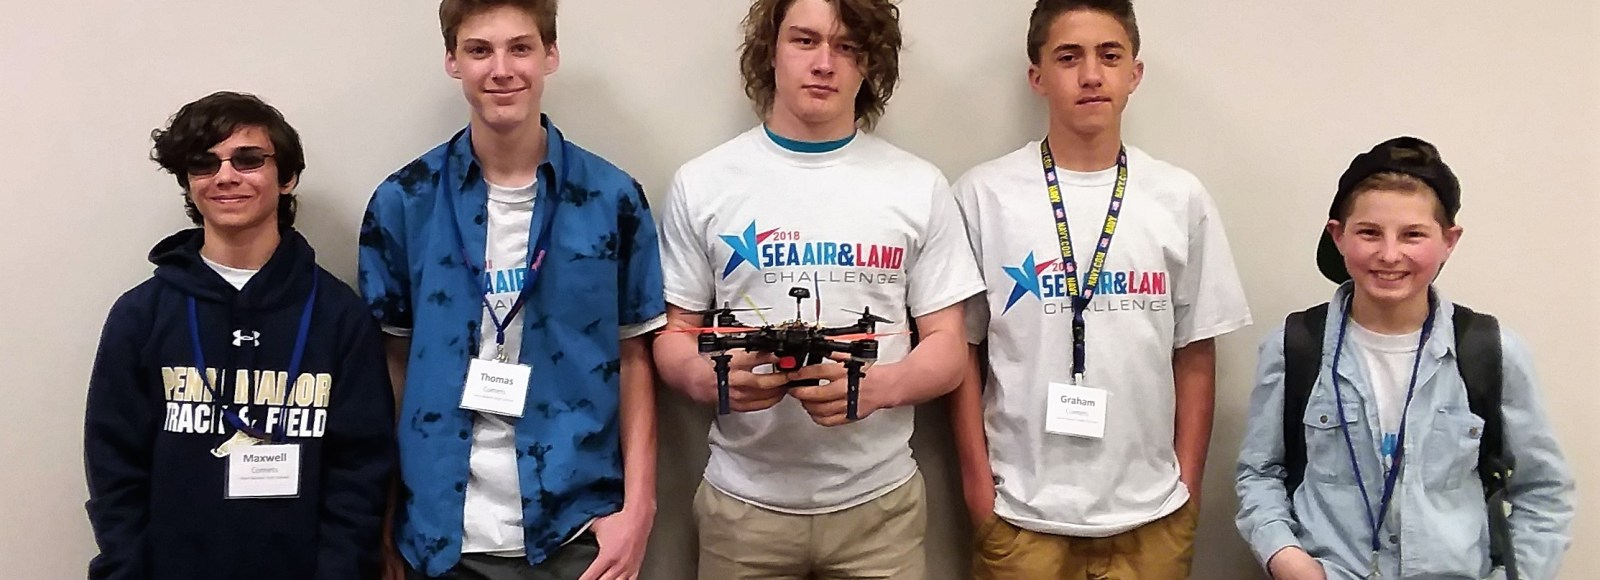 Grant helps power students to first place finish in drone design challenge